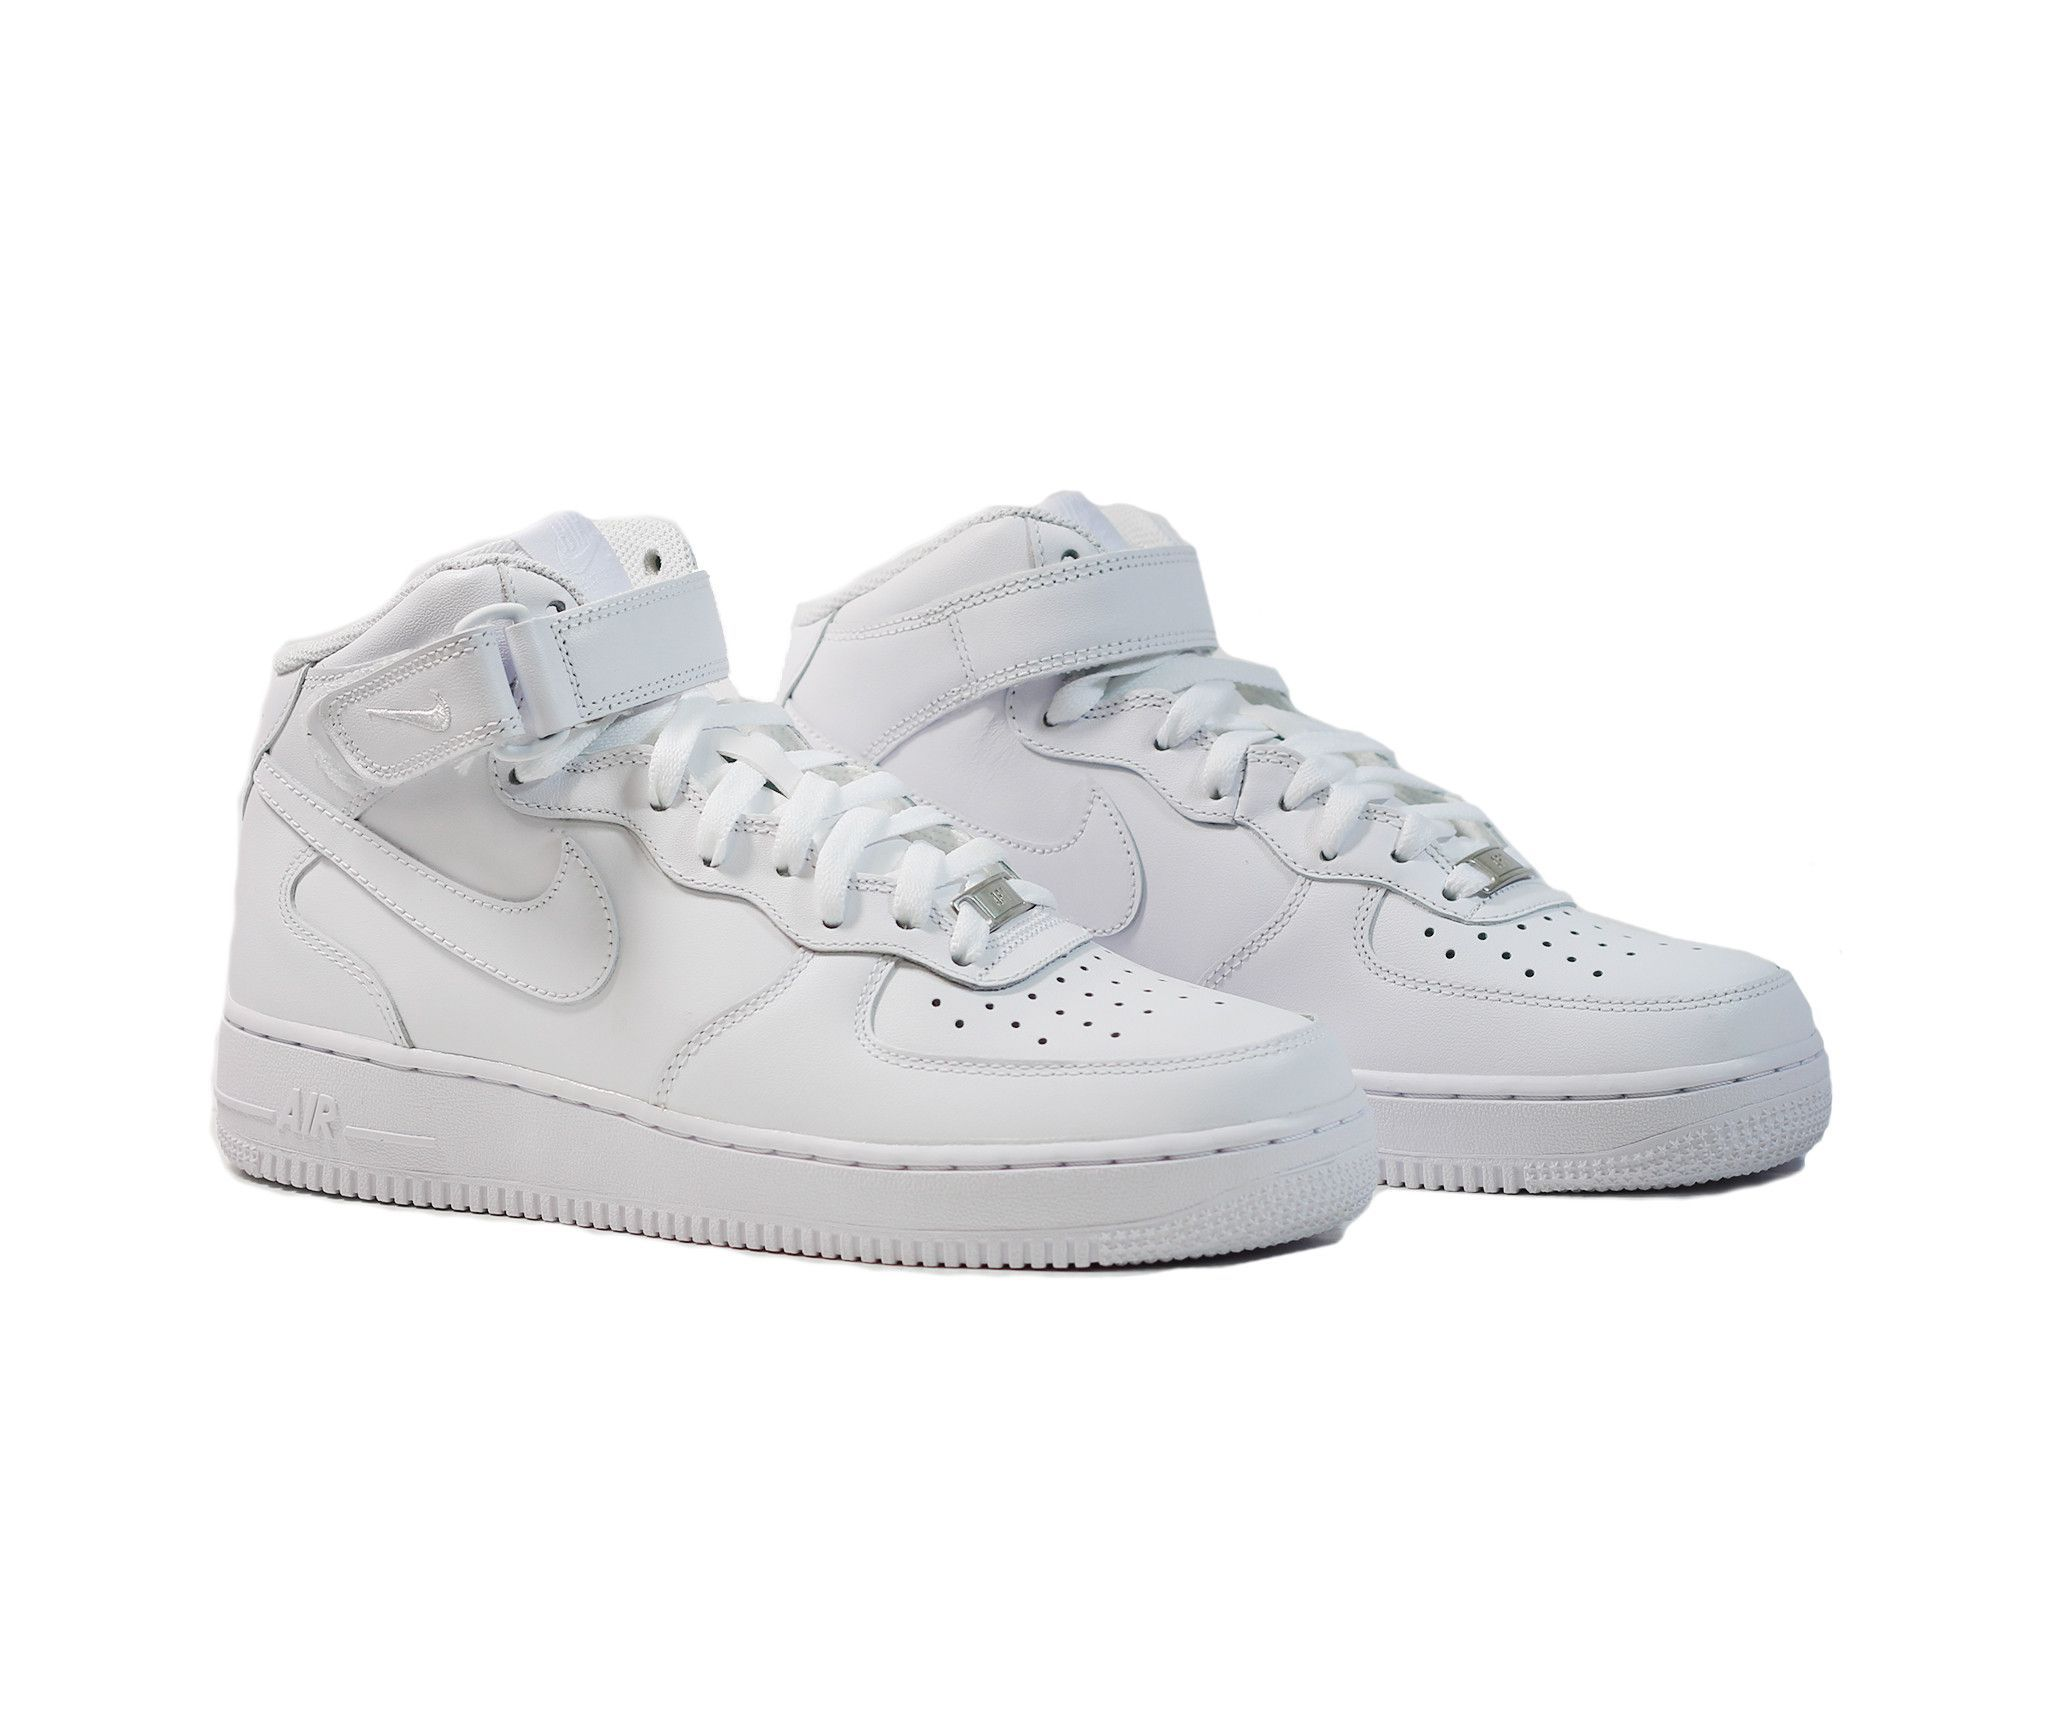 pretty nice d9453 50349 nike air force 1 ones 1997 mid cl sc white metallic silver varsity red